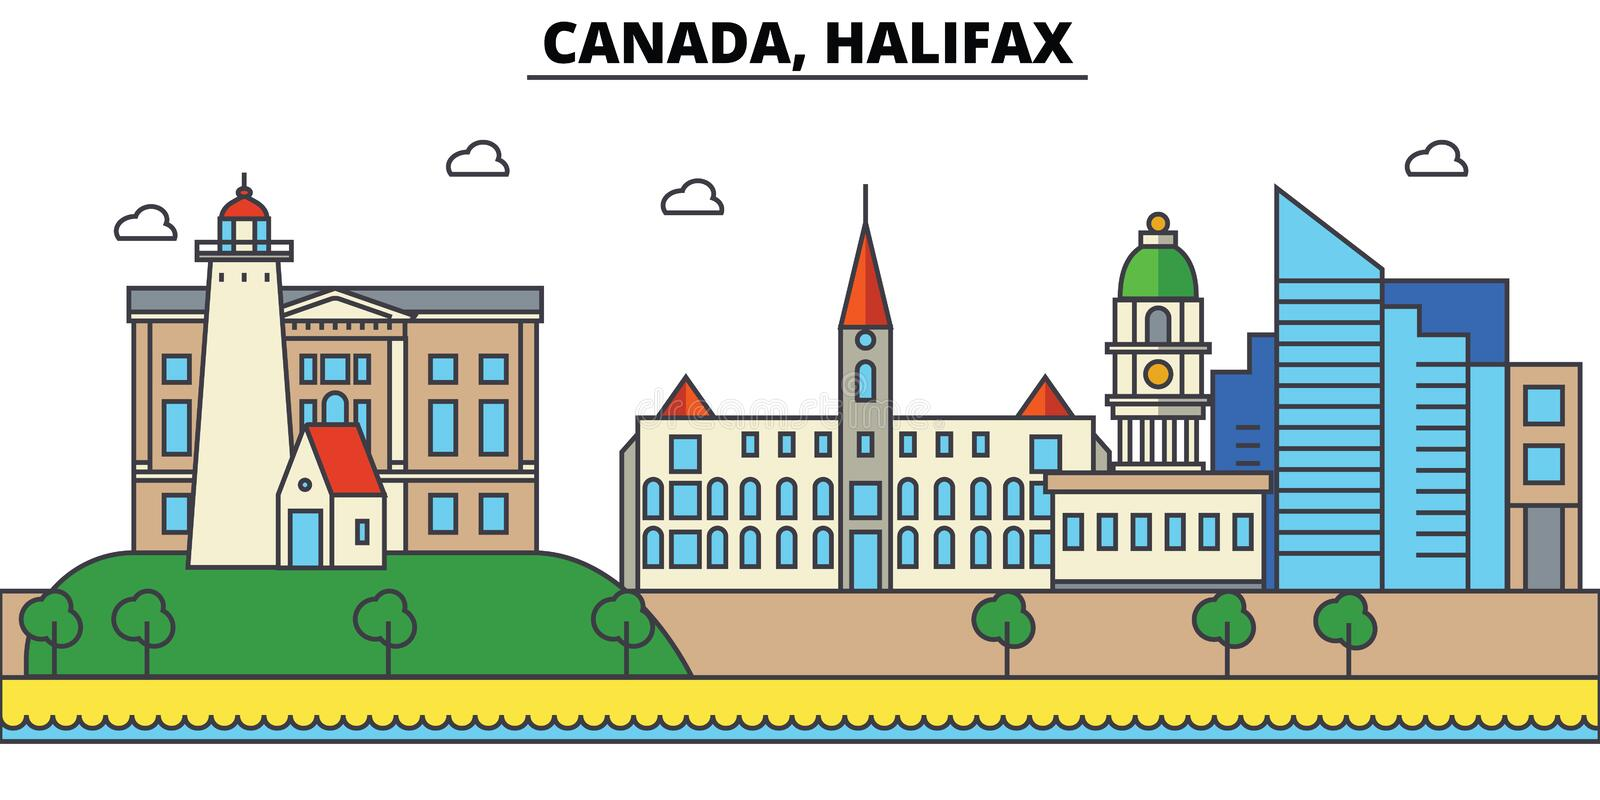 Canada, Halifax De architectuur Editable van de stadshorizon royalty-vrije illustratie